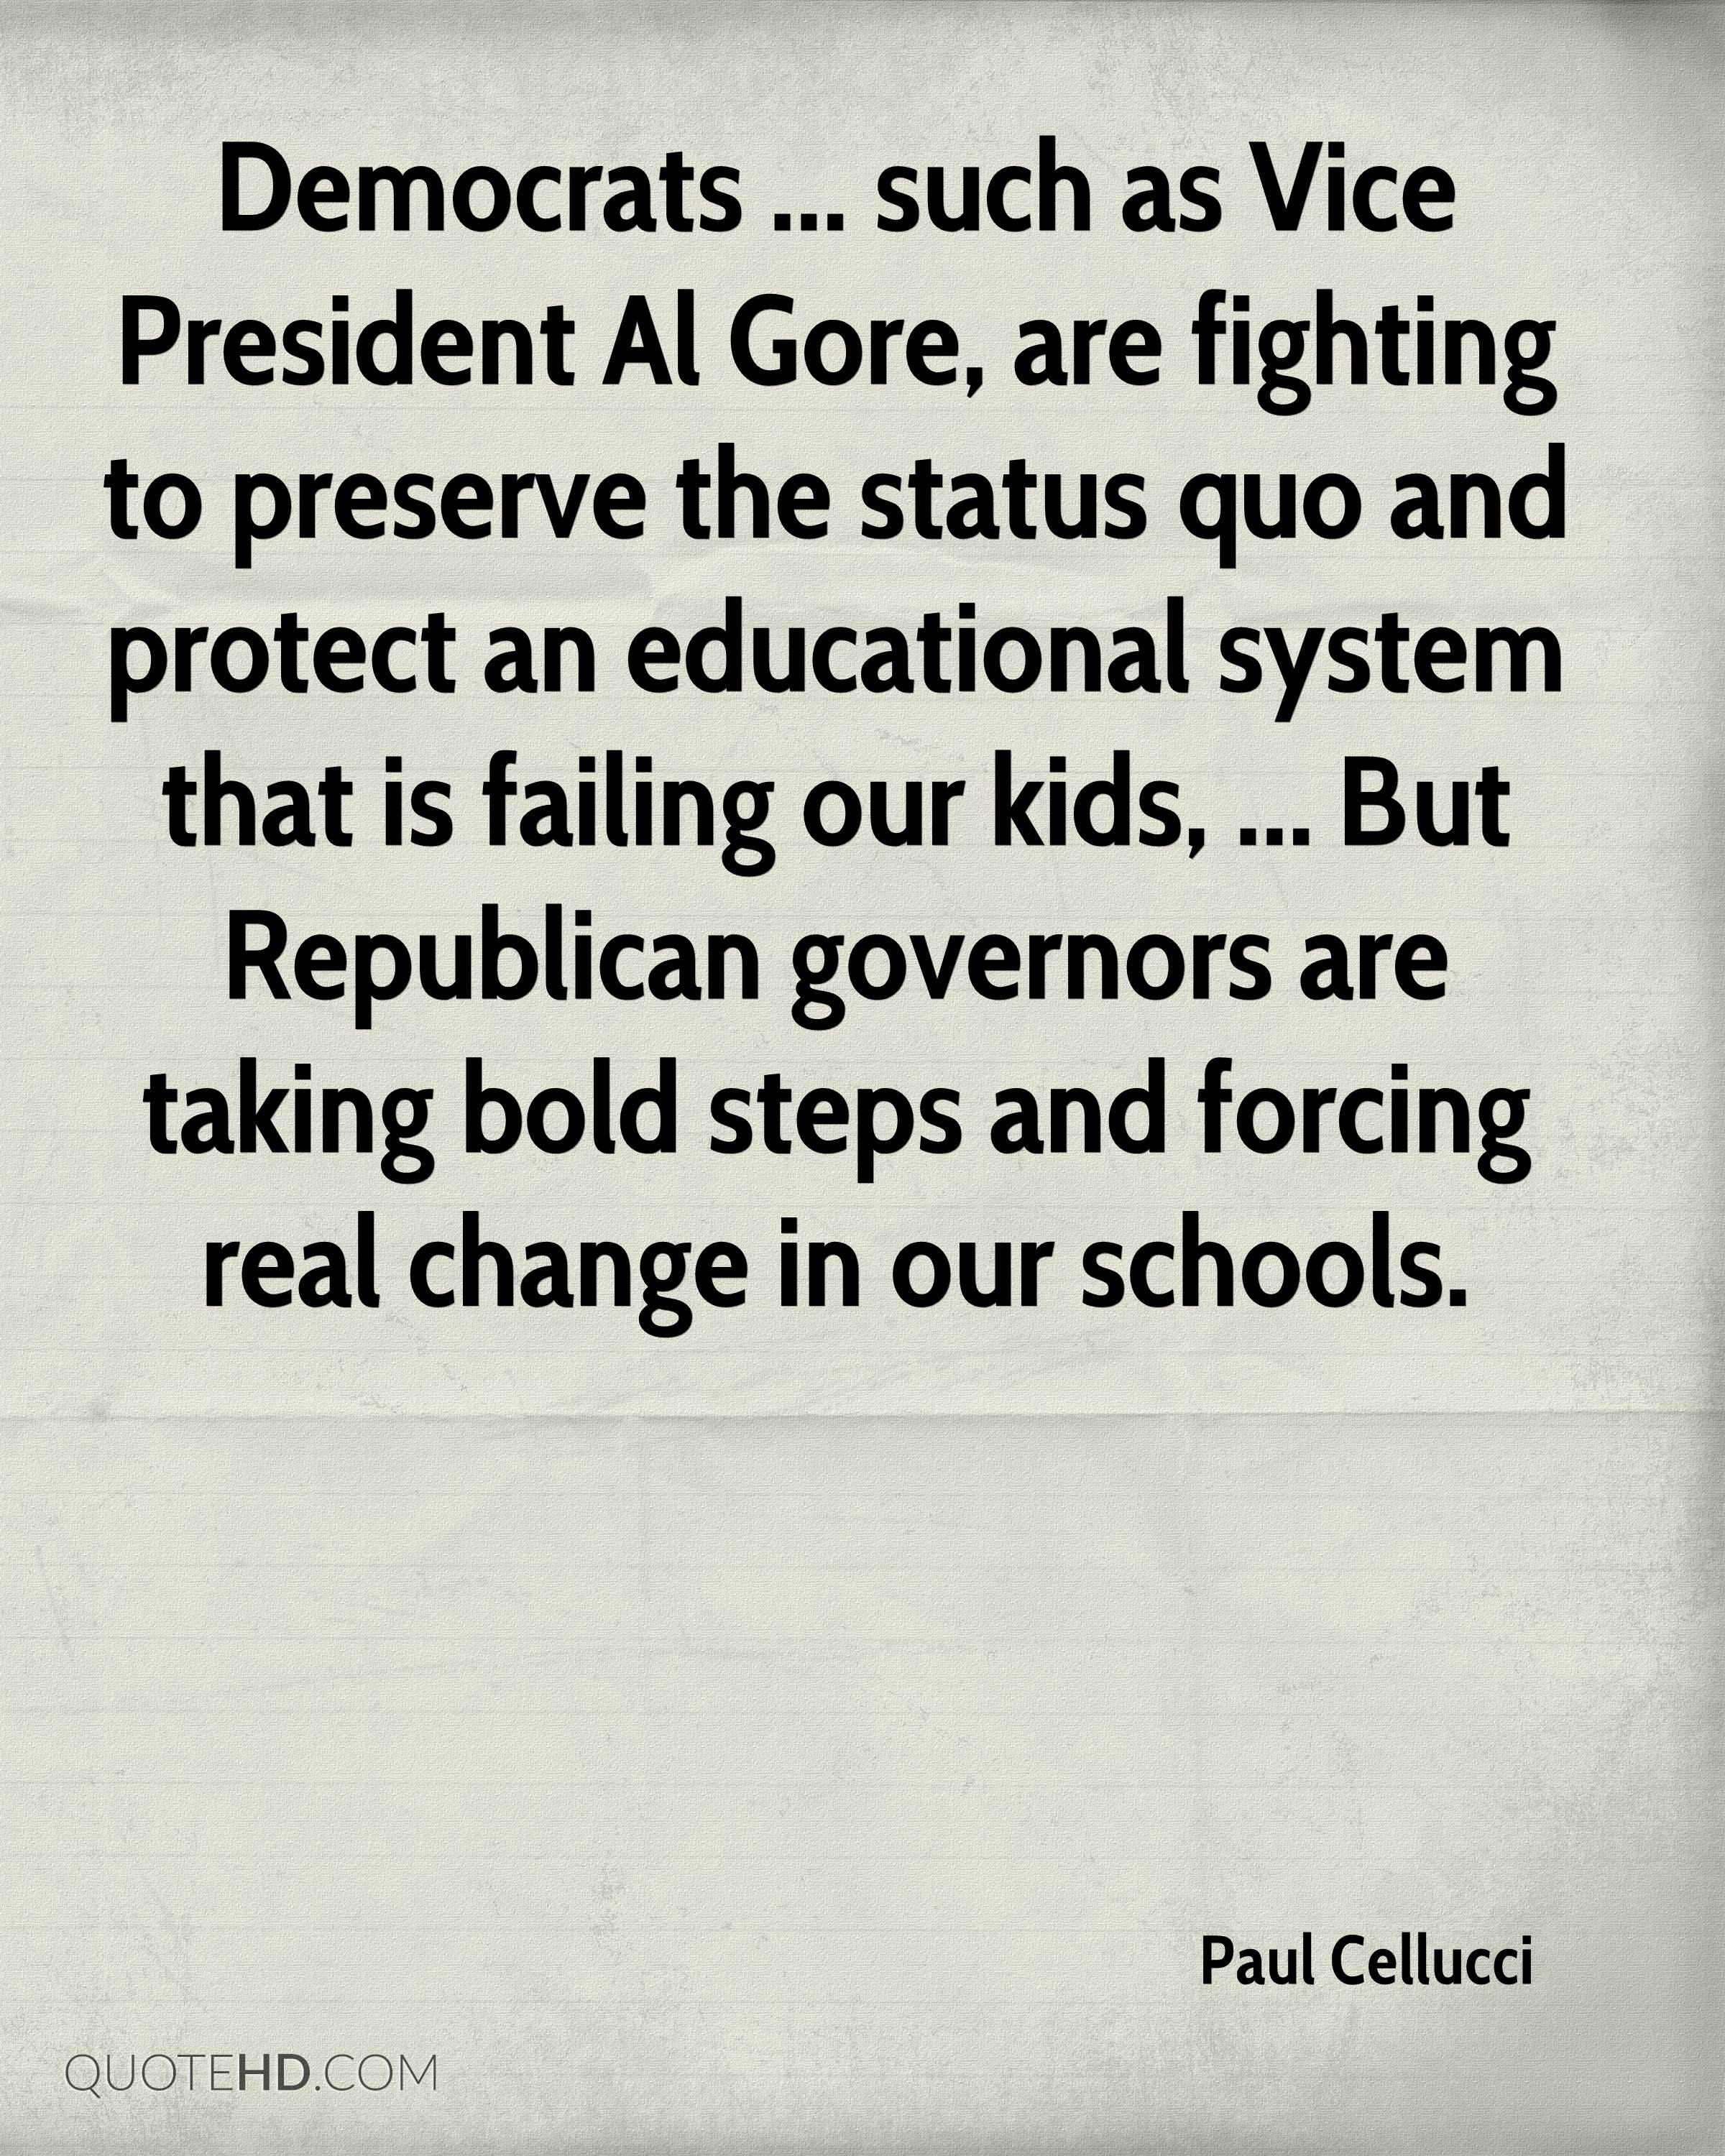 Democrats ... such as Vice President Al Gore, are fighting to preserve the status quo and protect an educational system that is failing our kids, ... But Republican governors are taking bold steps and forcing real change in our schools.